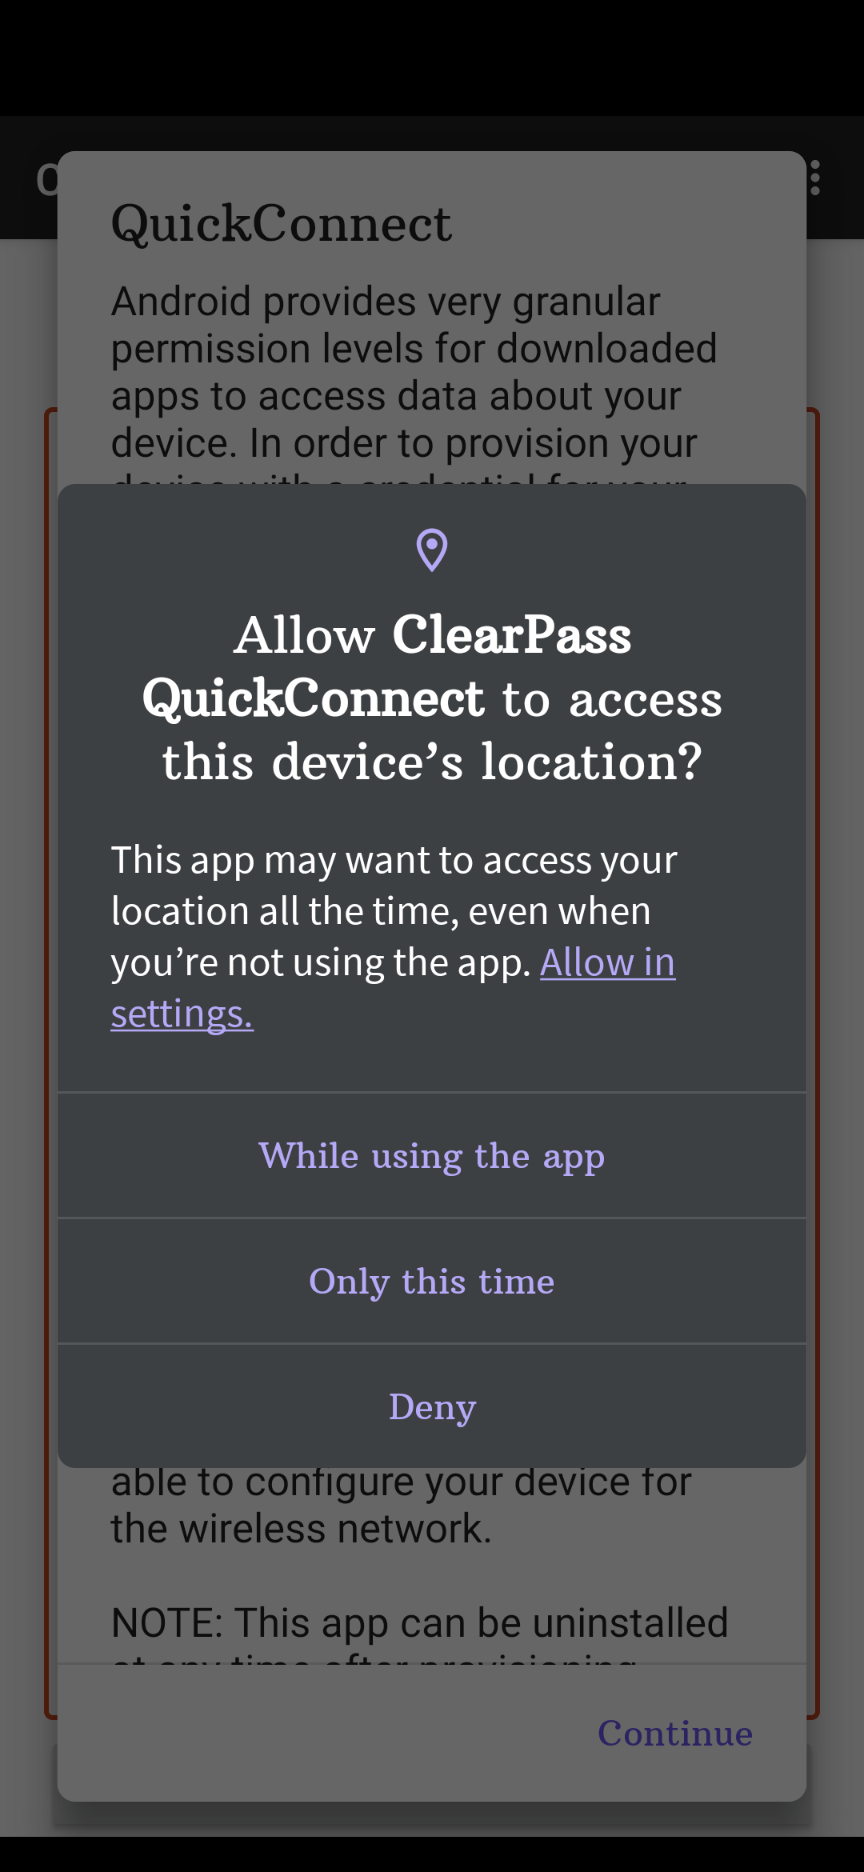 page asking to allow quick connect to allow location